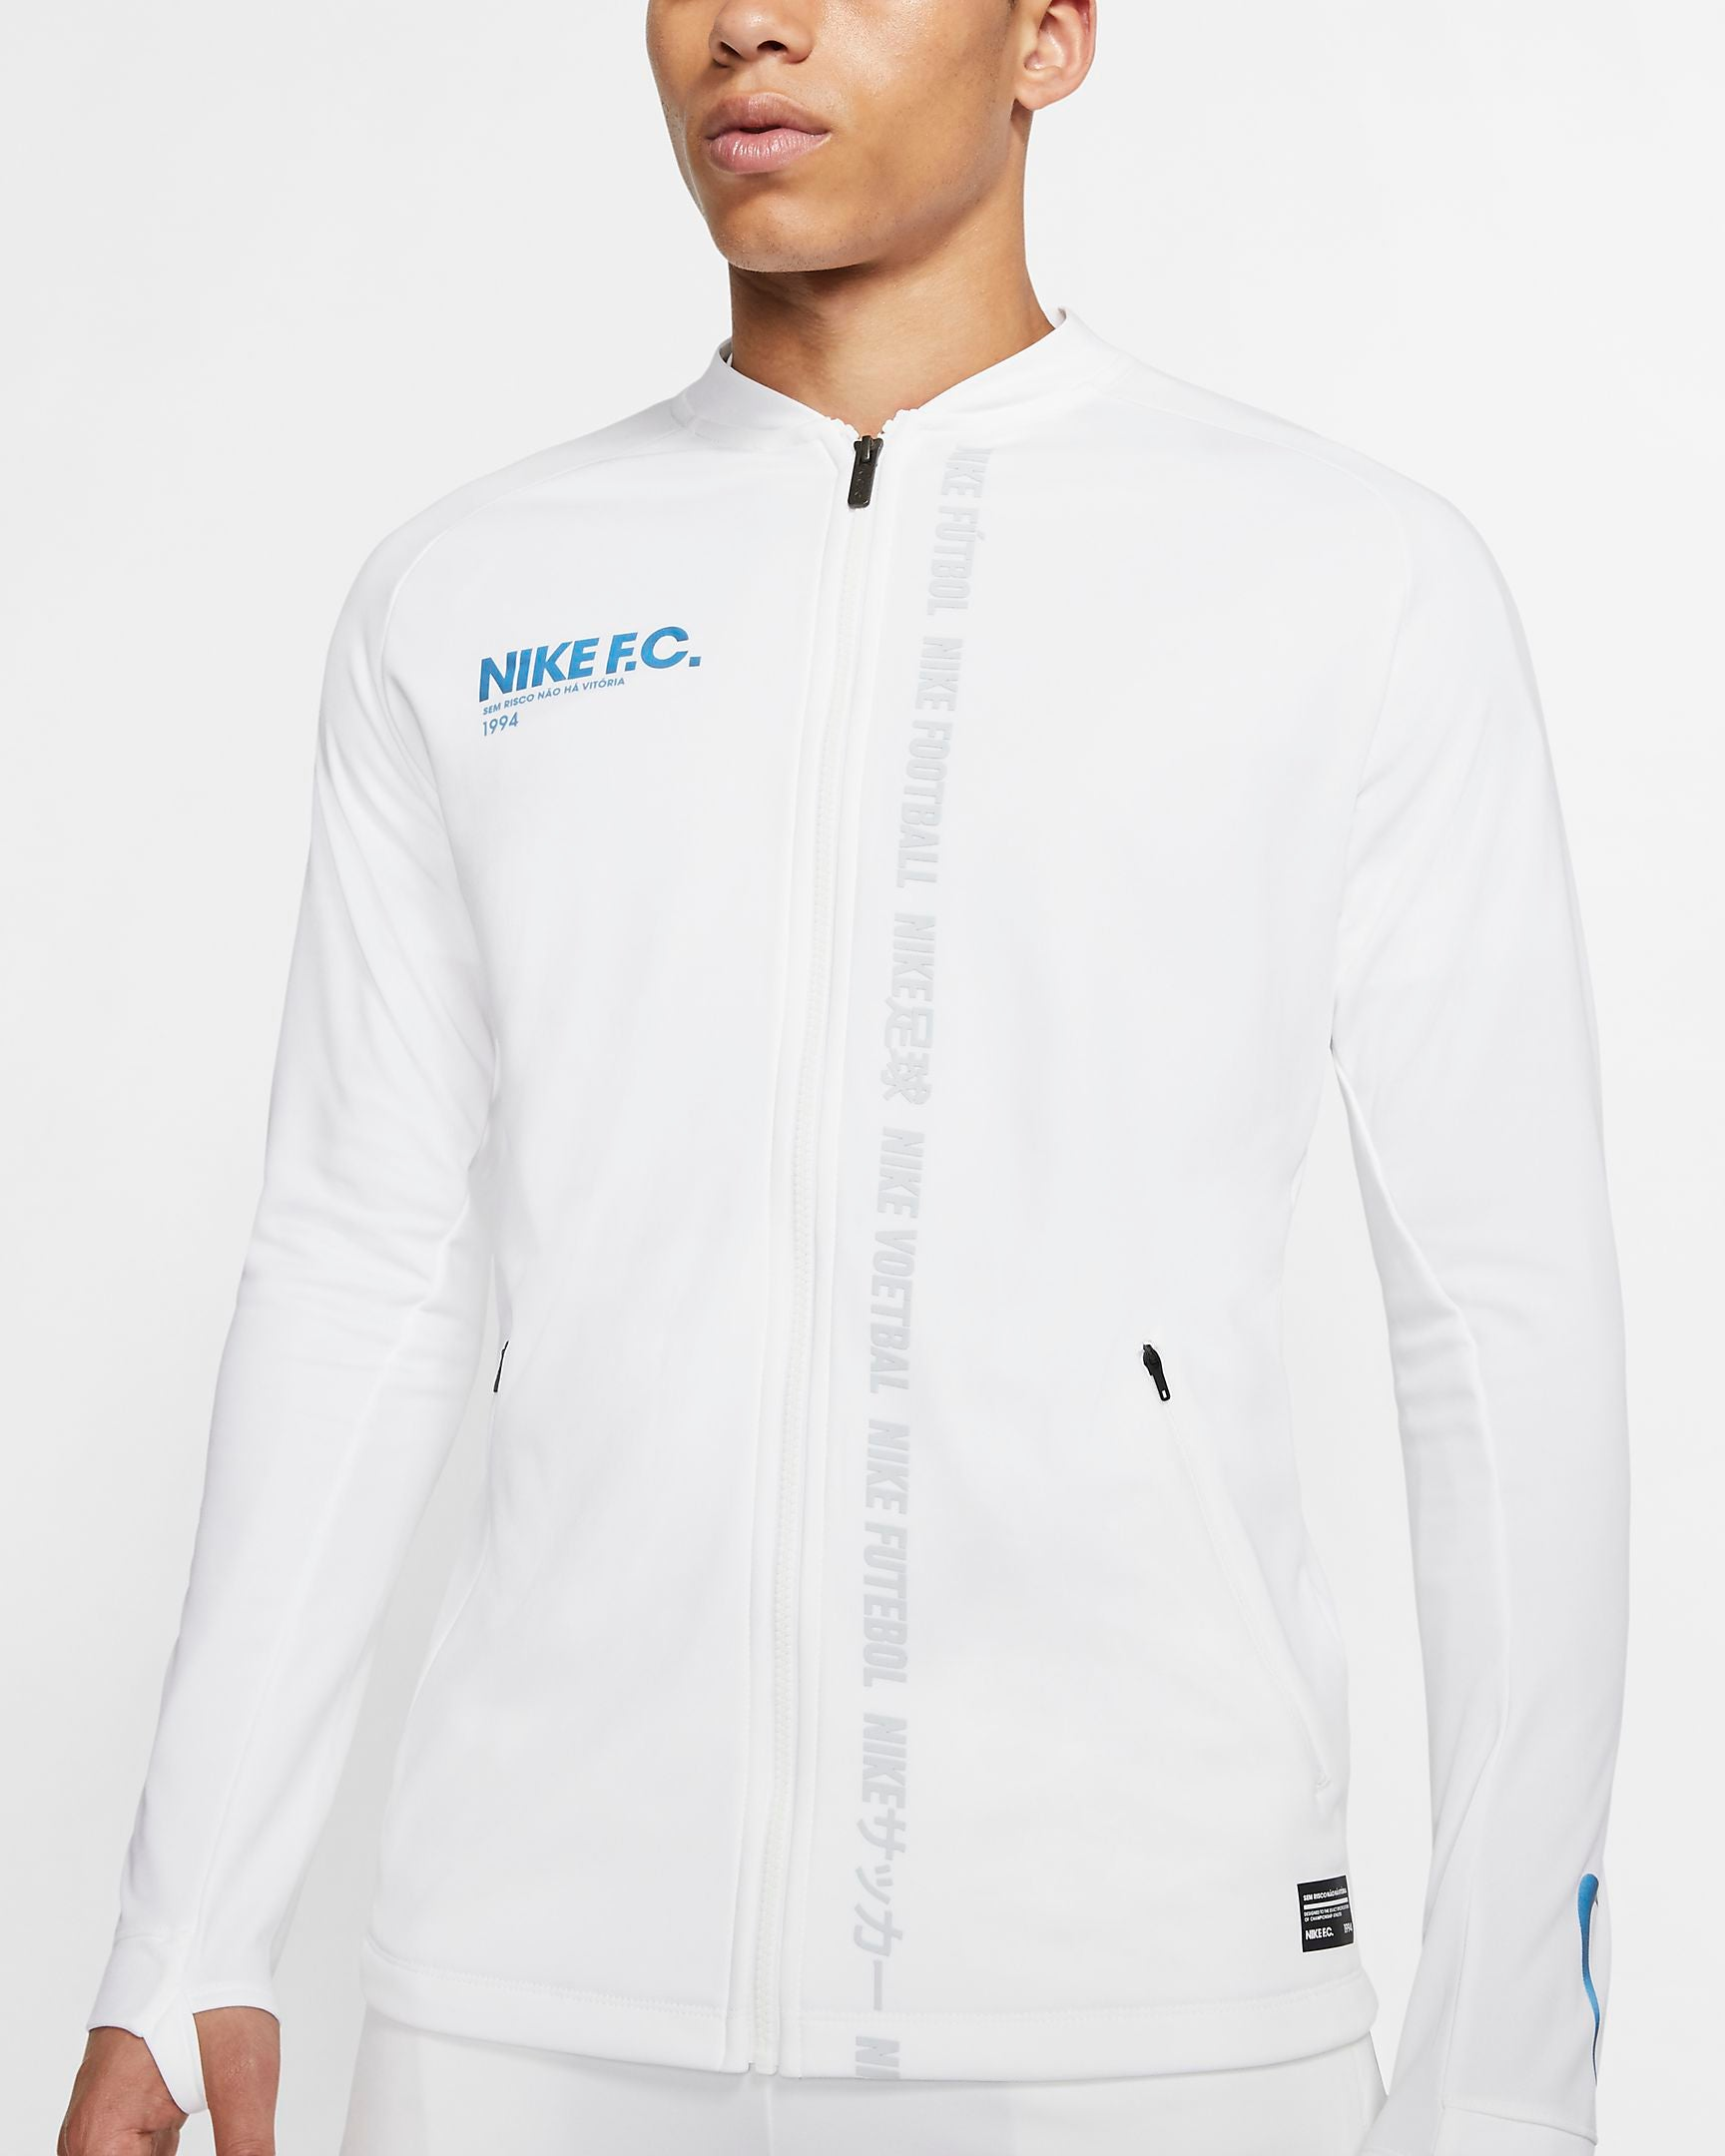 Men's Nike FC Squad Jacket.   Medium.   CN2746-